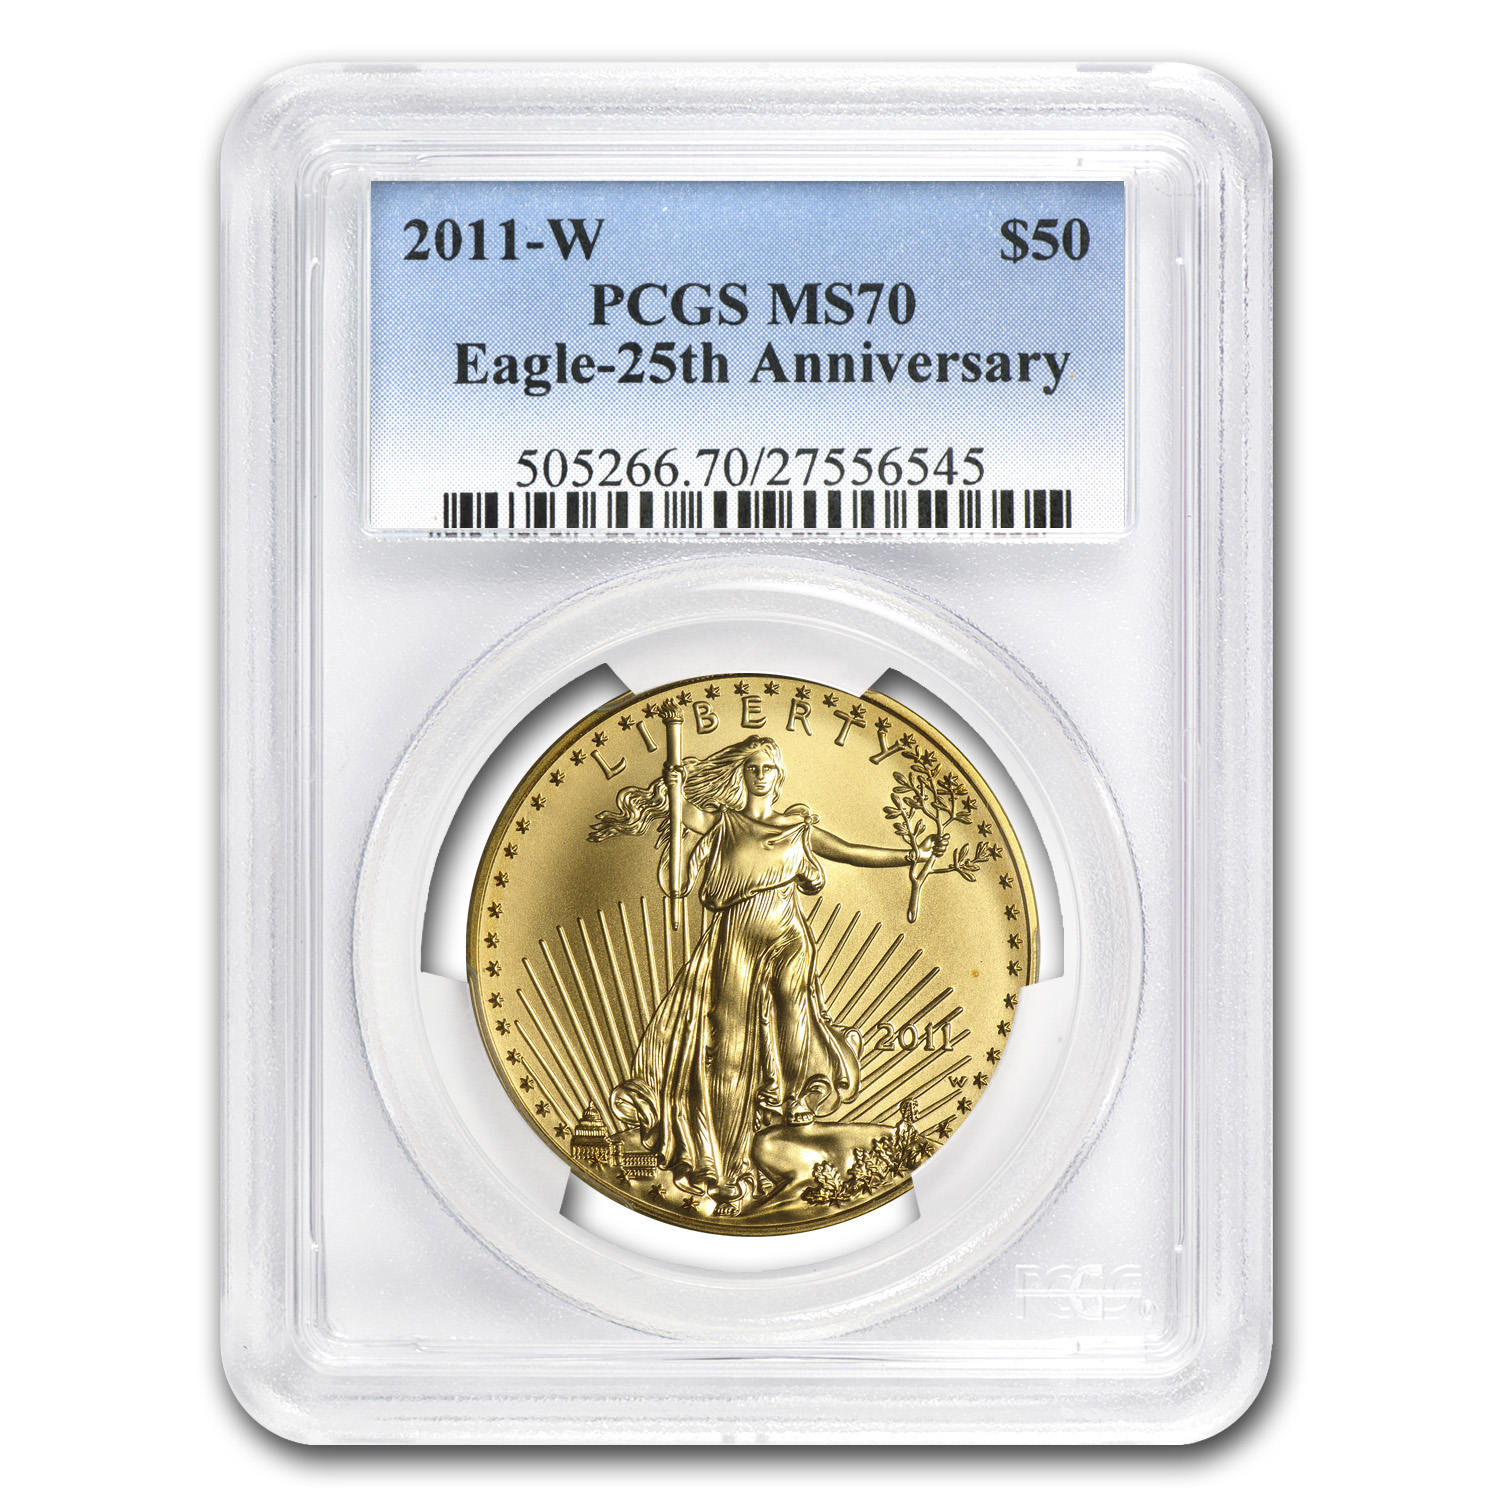 2011-W 1 oz Burnished Gold American Eagle MS-70 PCGS